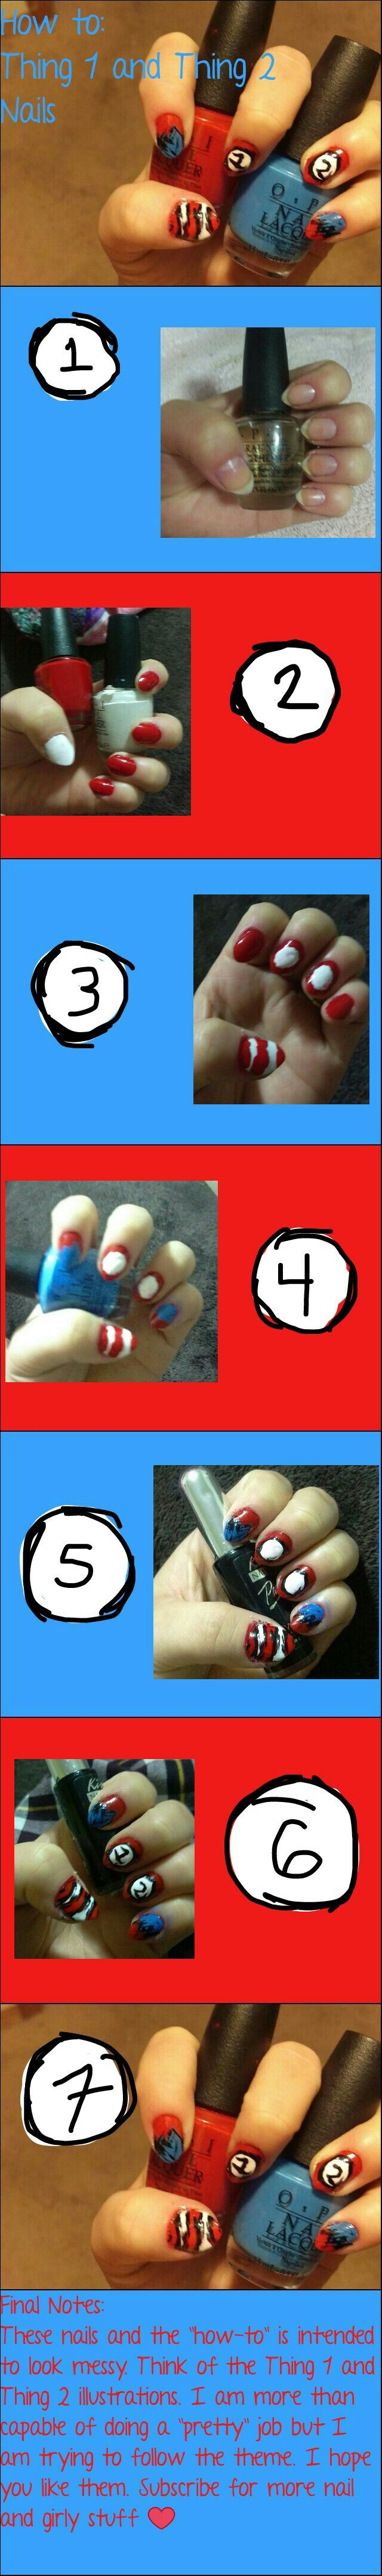 How-to Thing 1 and Thing 2 nails